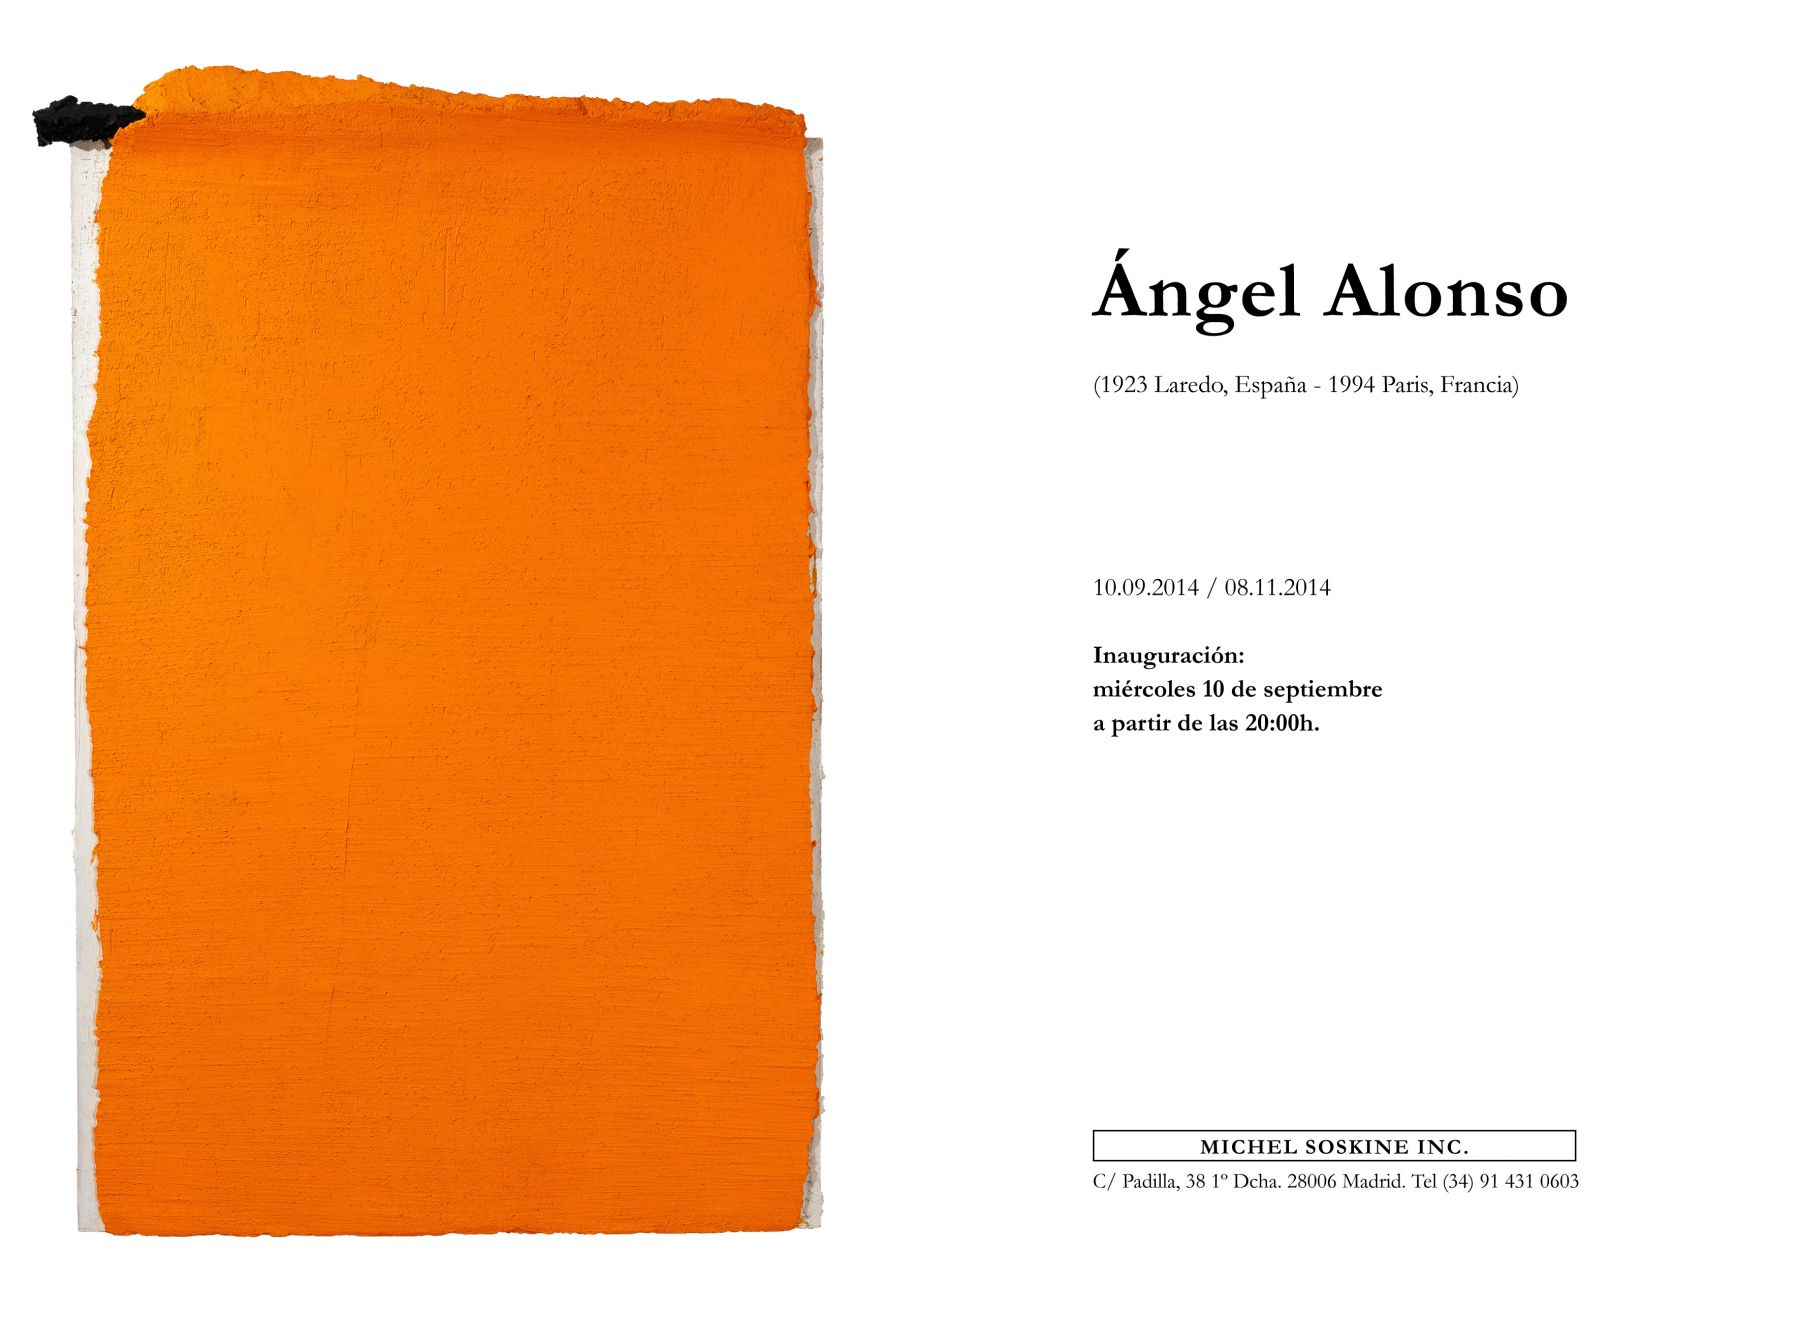 ÁNGEL ALONSO, 1923 Laredo, Spain - 1994 Paris, France